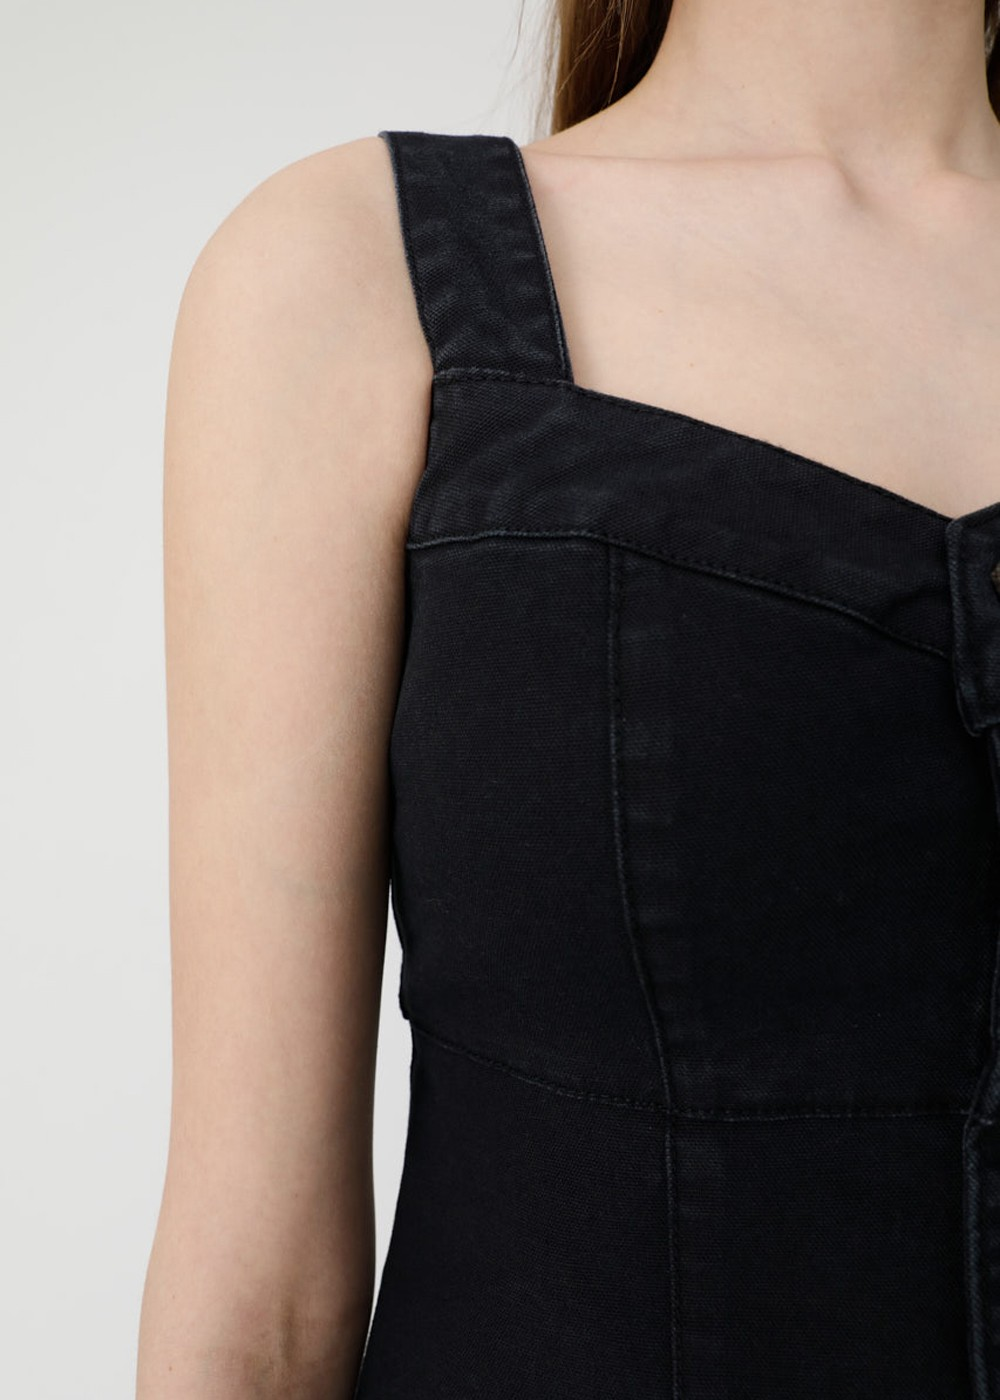 【最大70%OFF】HI STRETCH F/BUTTON BUSTIER|BLK|その他トップス|MOUSSY